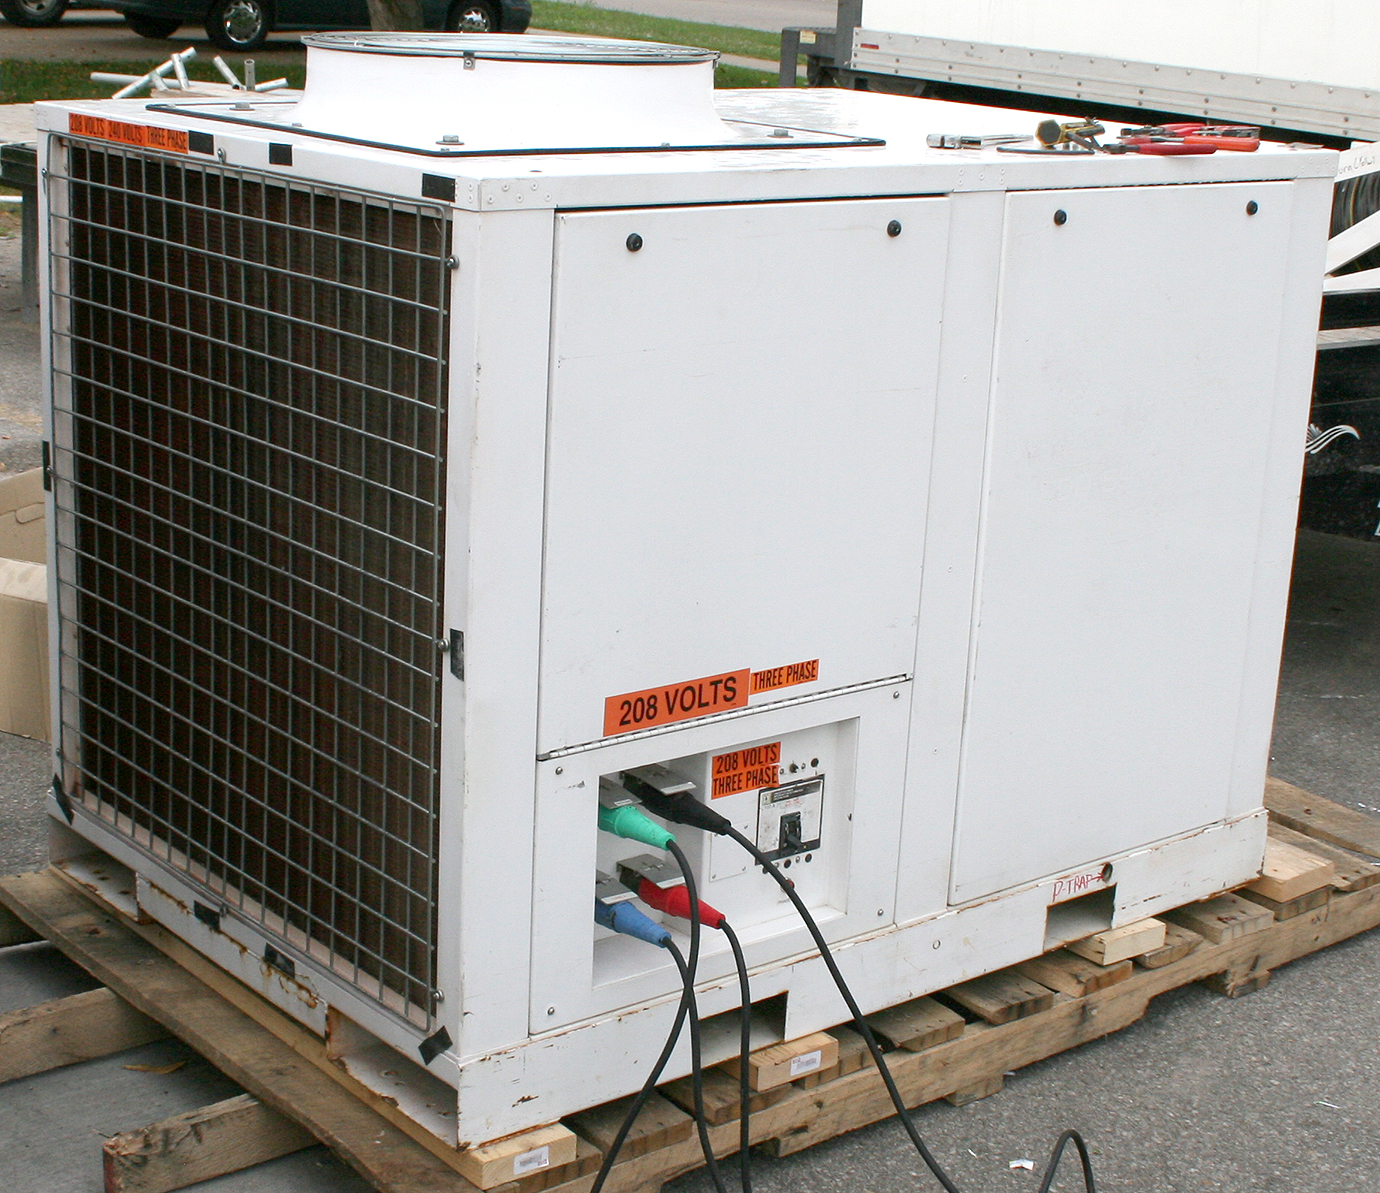 Event + Emergency Mobile 12-ton A/C Unit Rental In Iowa